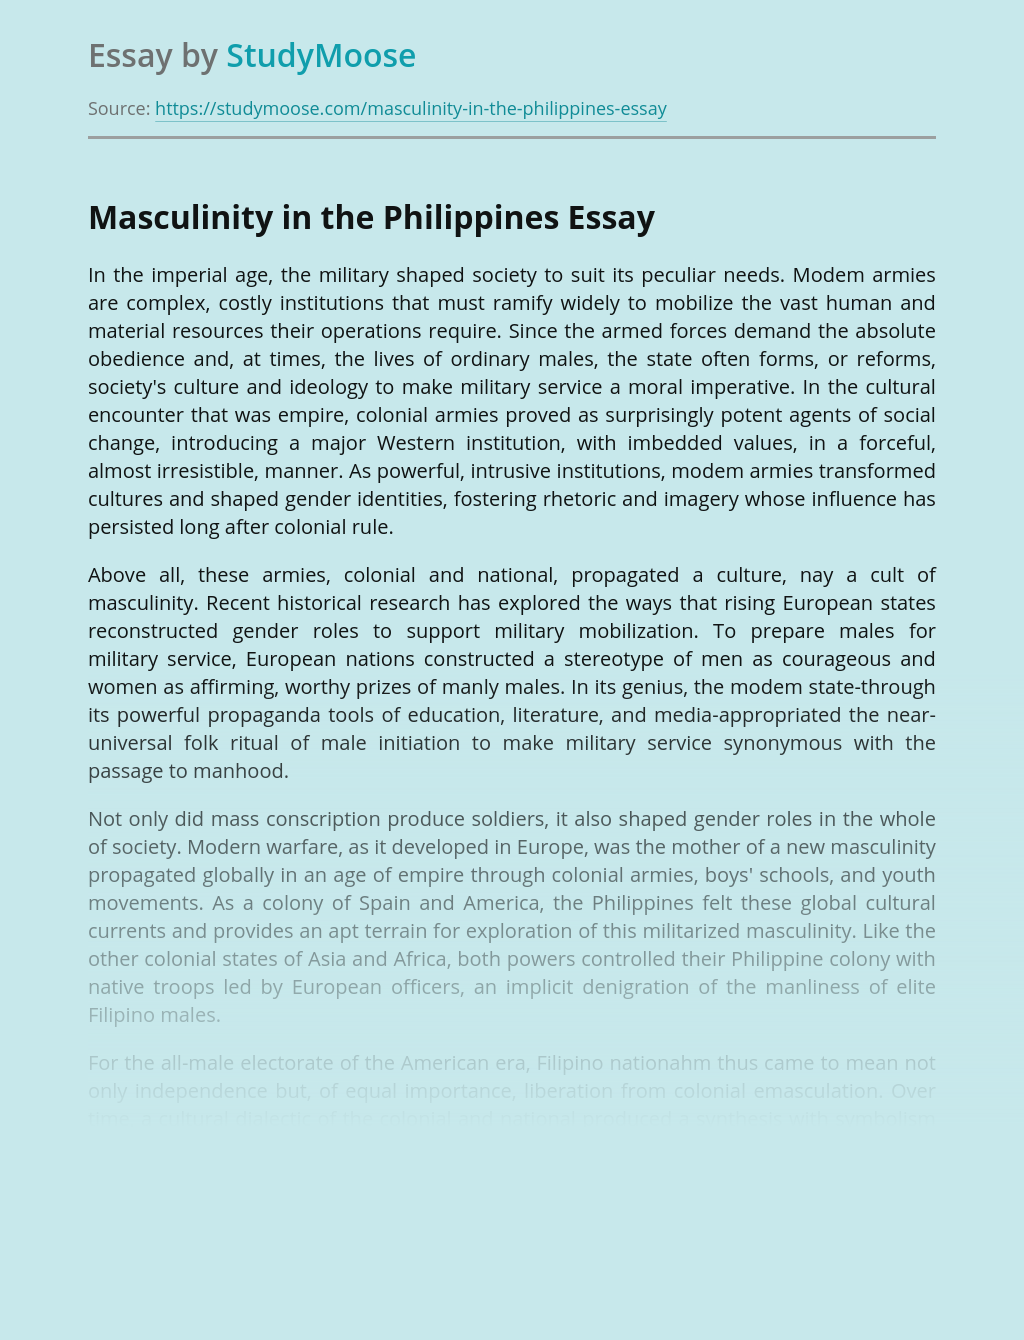 Masculinity in the Philippines